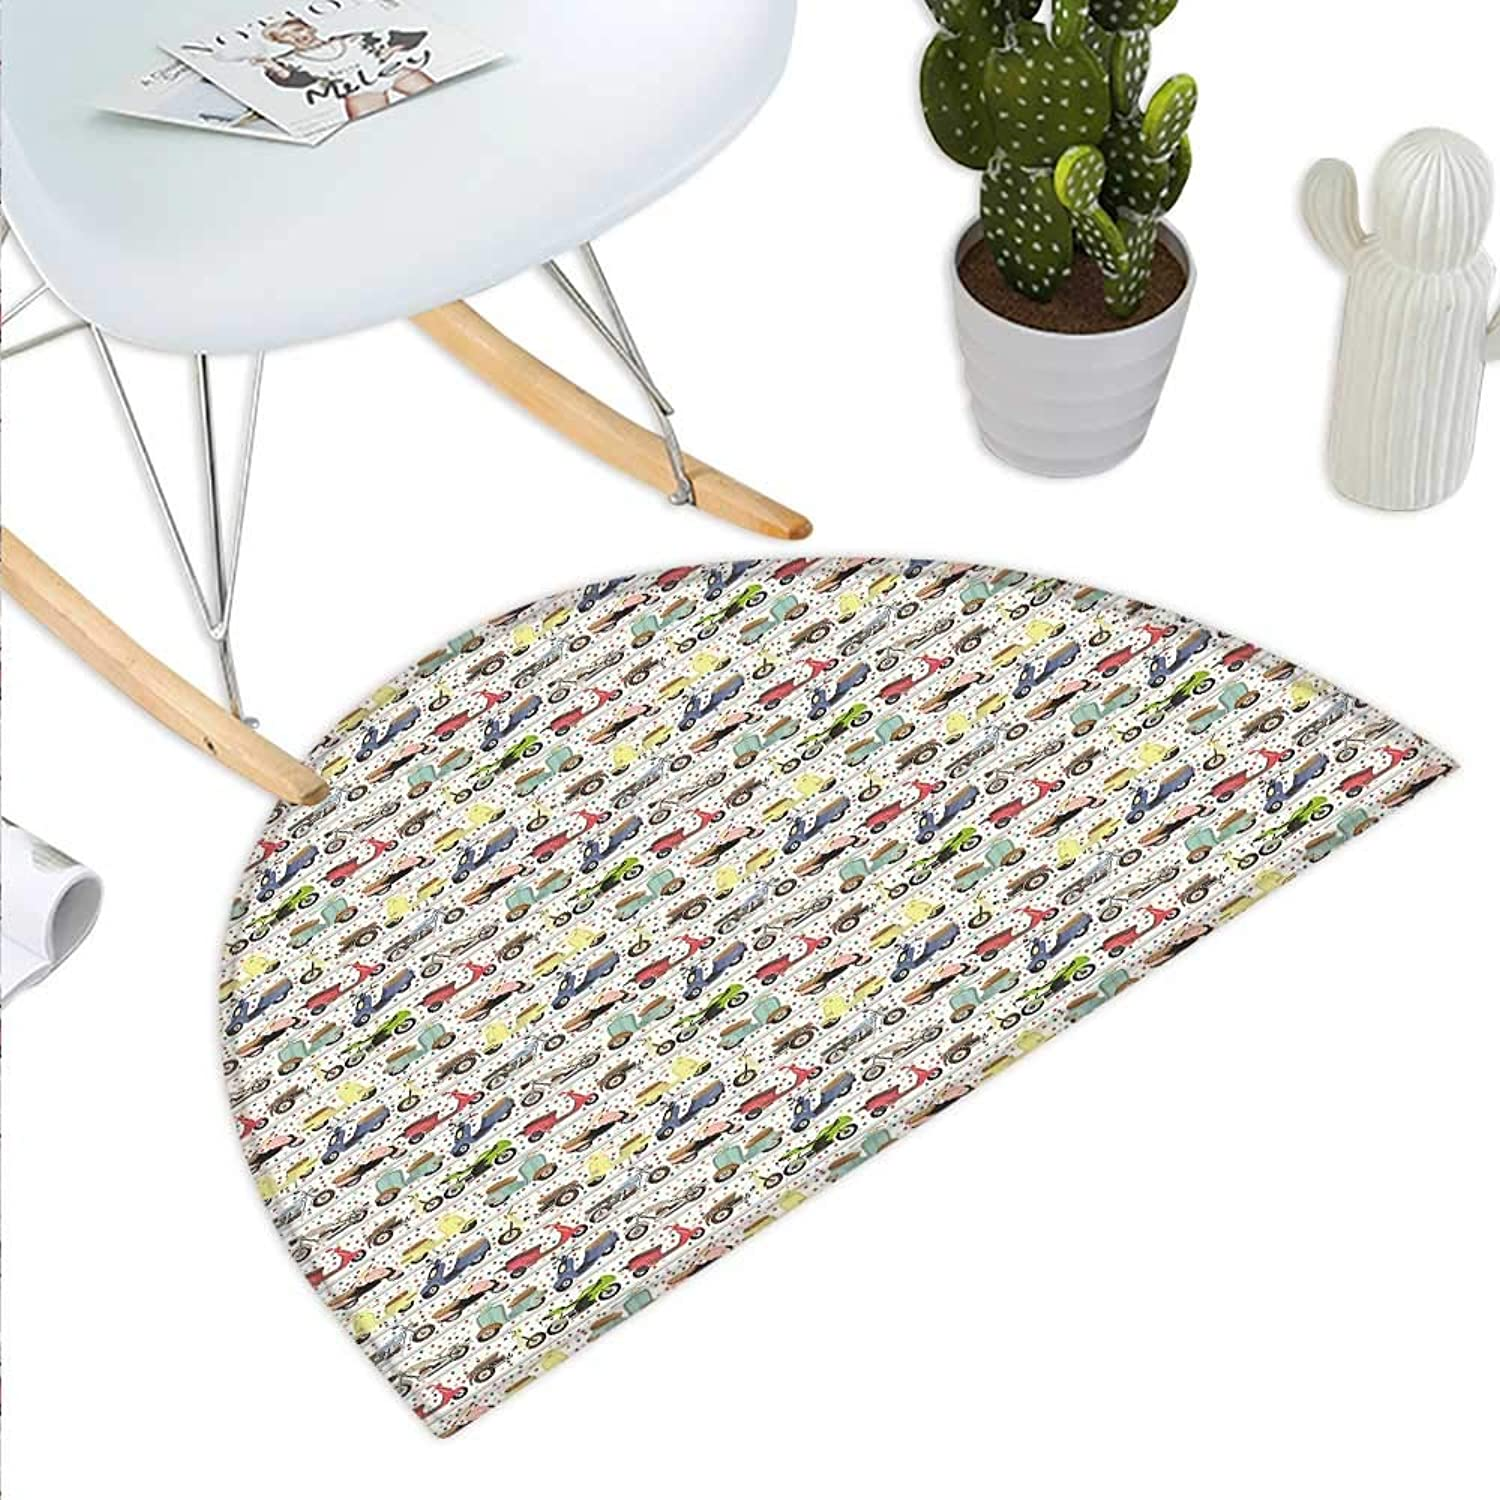 Motorcycle Semicircle Doormat Vintage Multicolord Motorcycles Old and Modern and Lively Spots in Background Halfmoon doormats H 35.4  xD 53.1  Multicolor